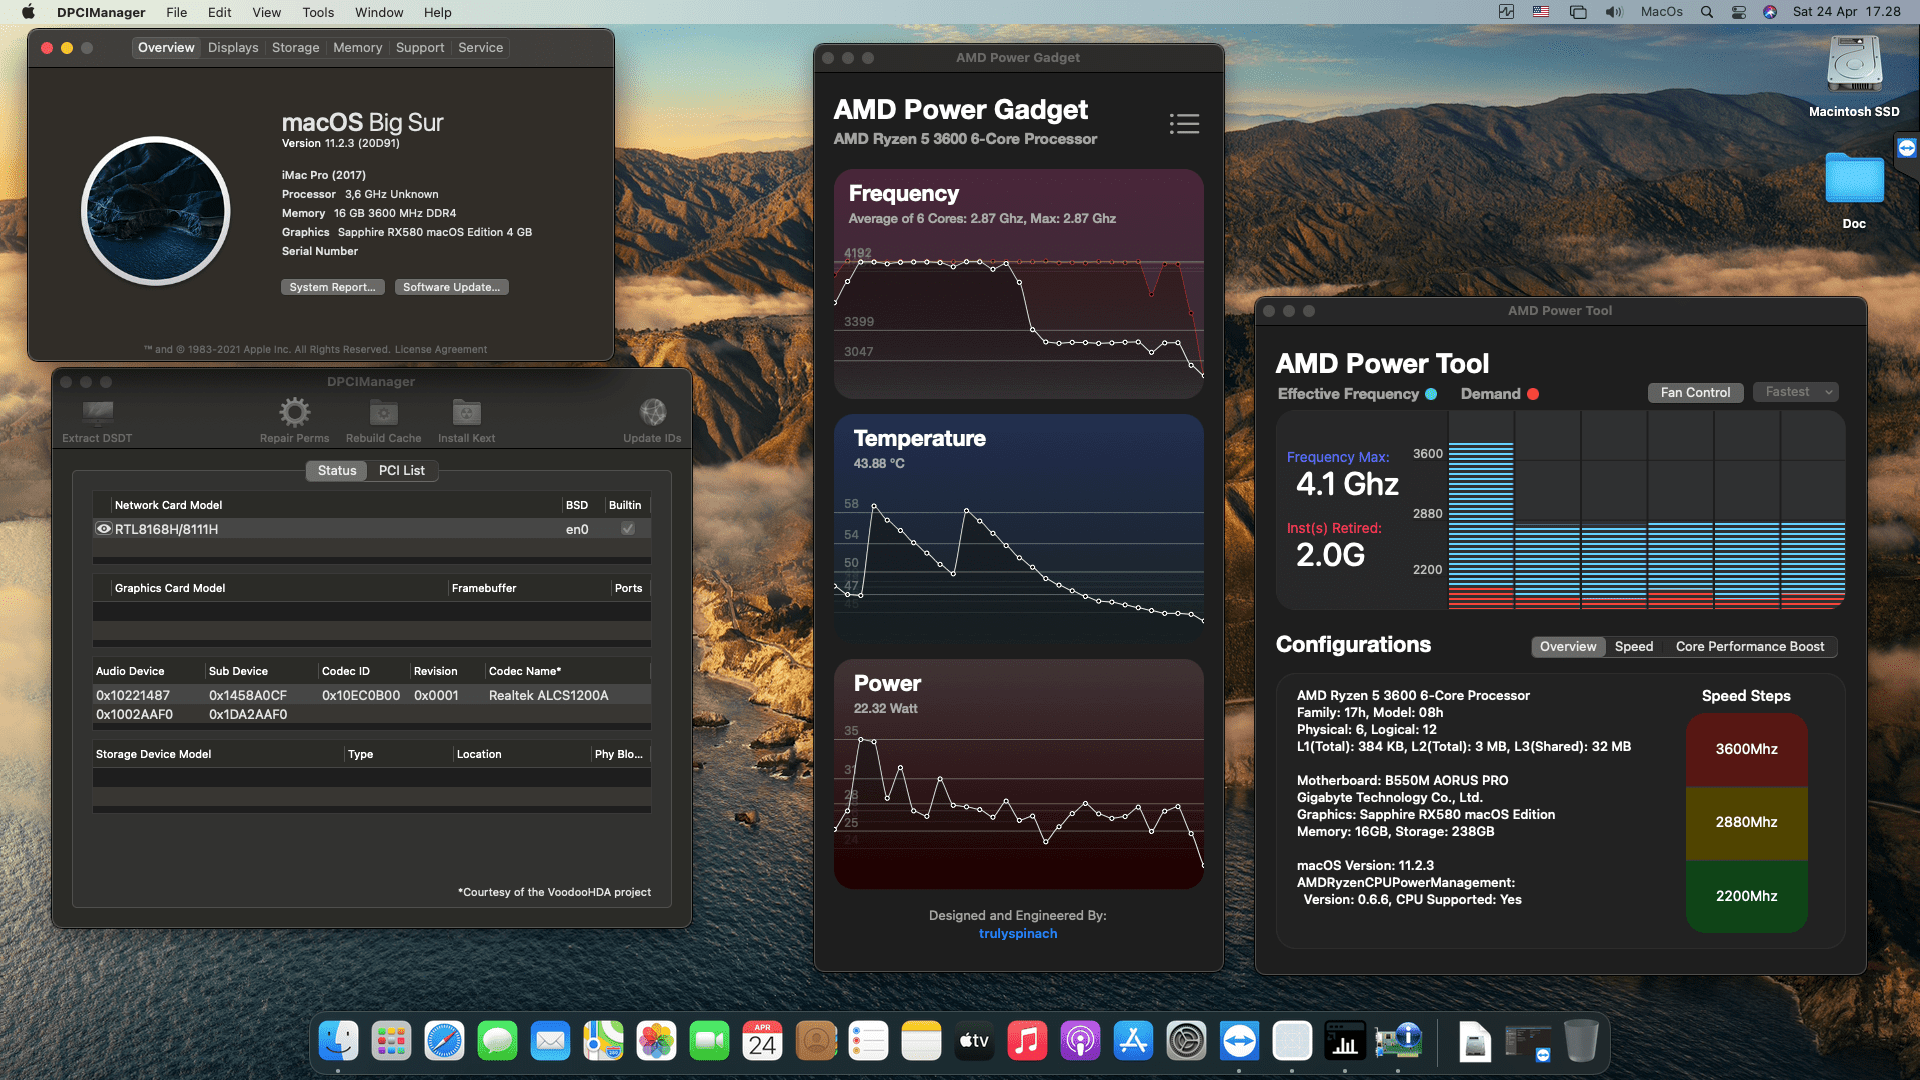 Success Hackintosh macOS Big Sur 11.2.3 Build 20D91 in Gigabyte B550M Aorus Pro + AMD Ryzen 5 3600 + Sapphire RX 580